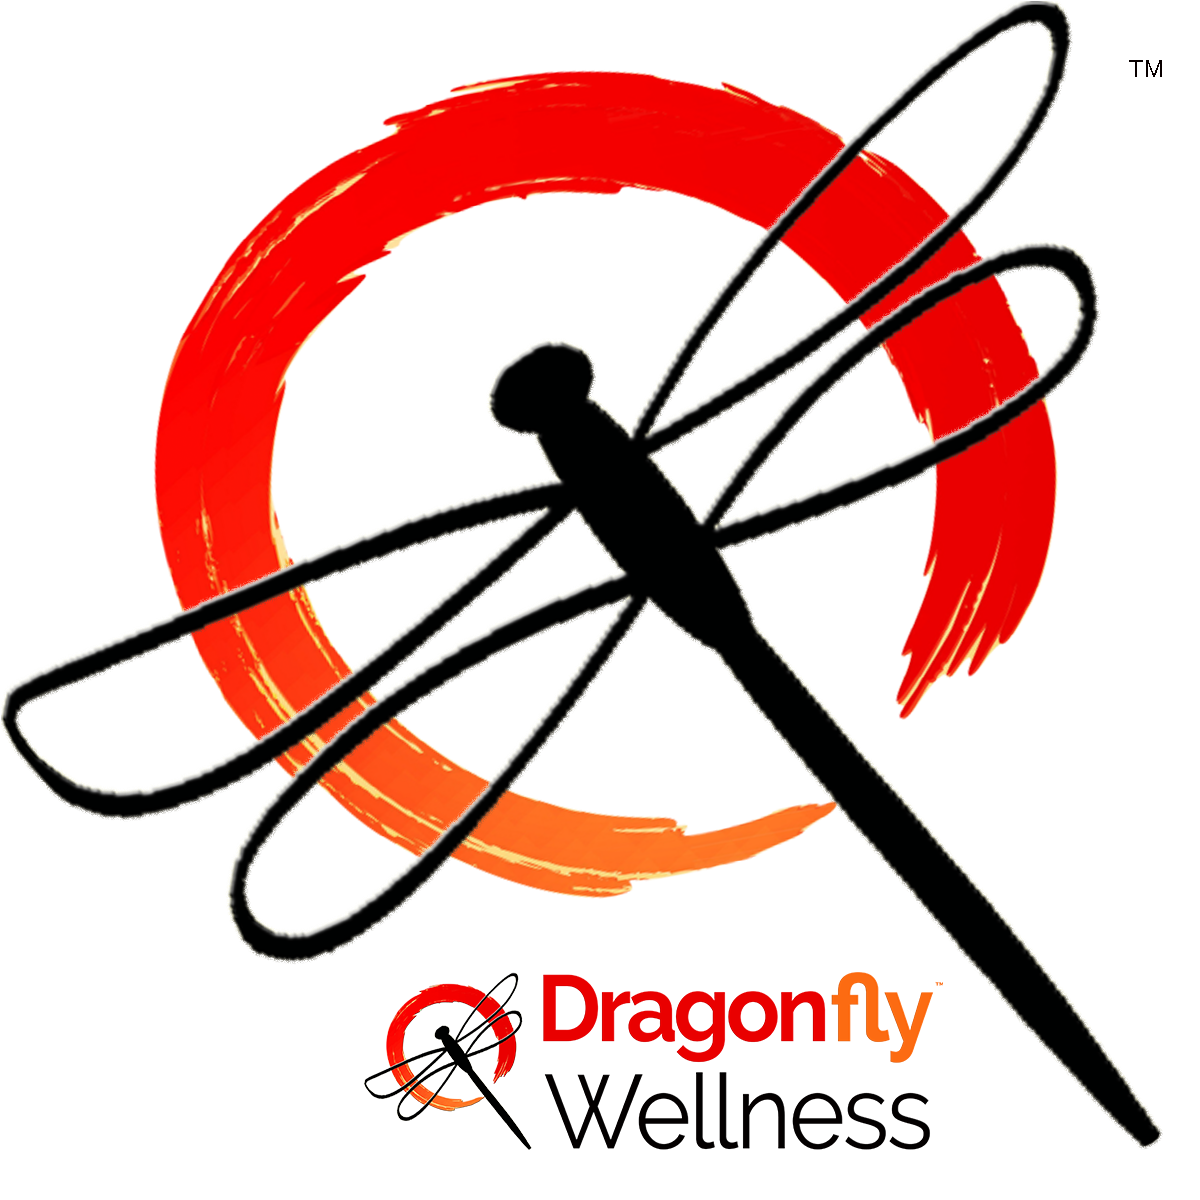 Dragonfly-Wellness-logoWith-Full-Logo-Trans